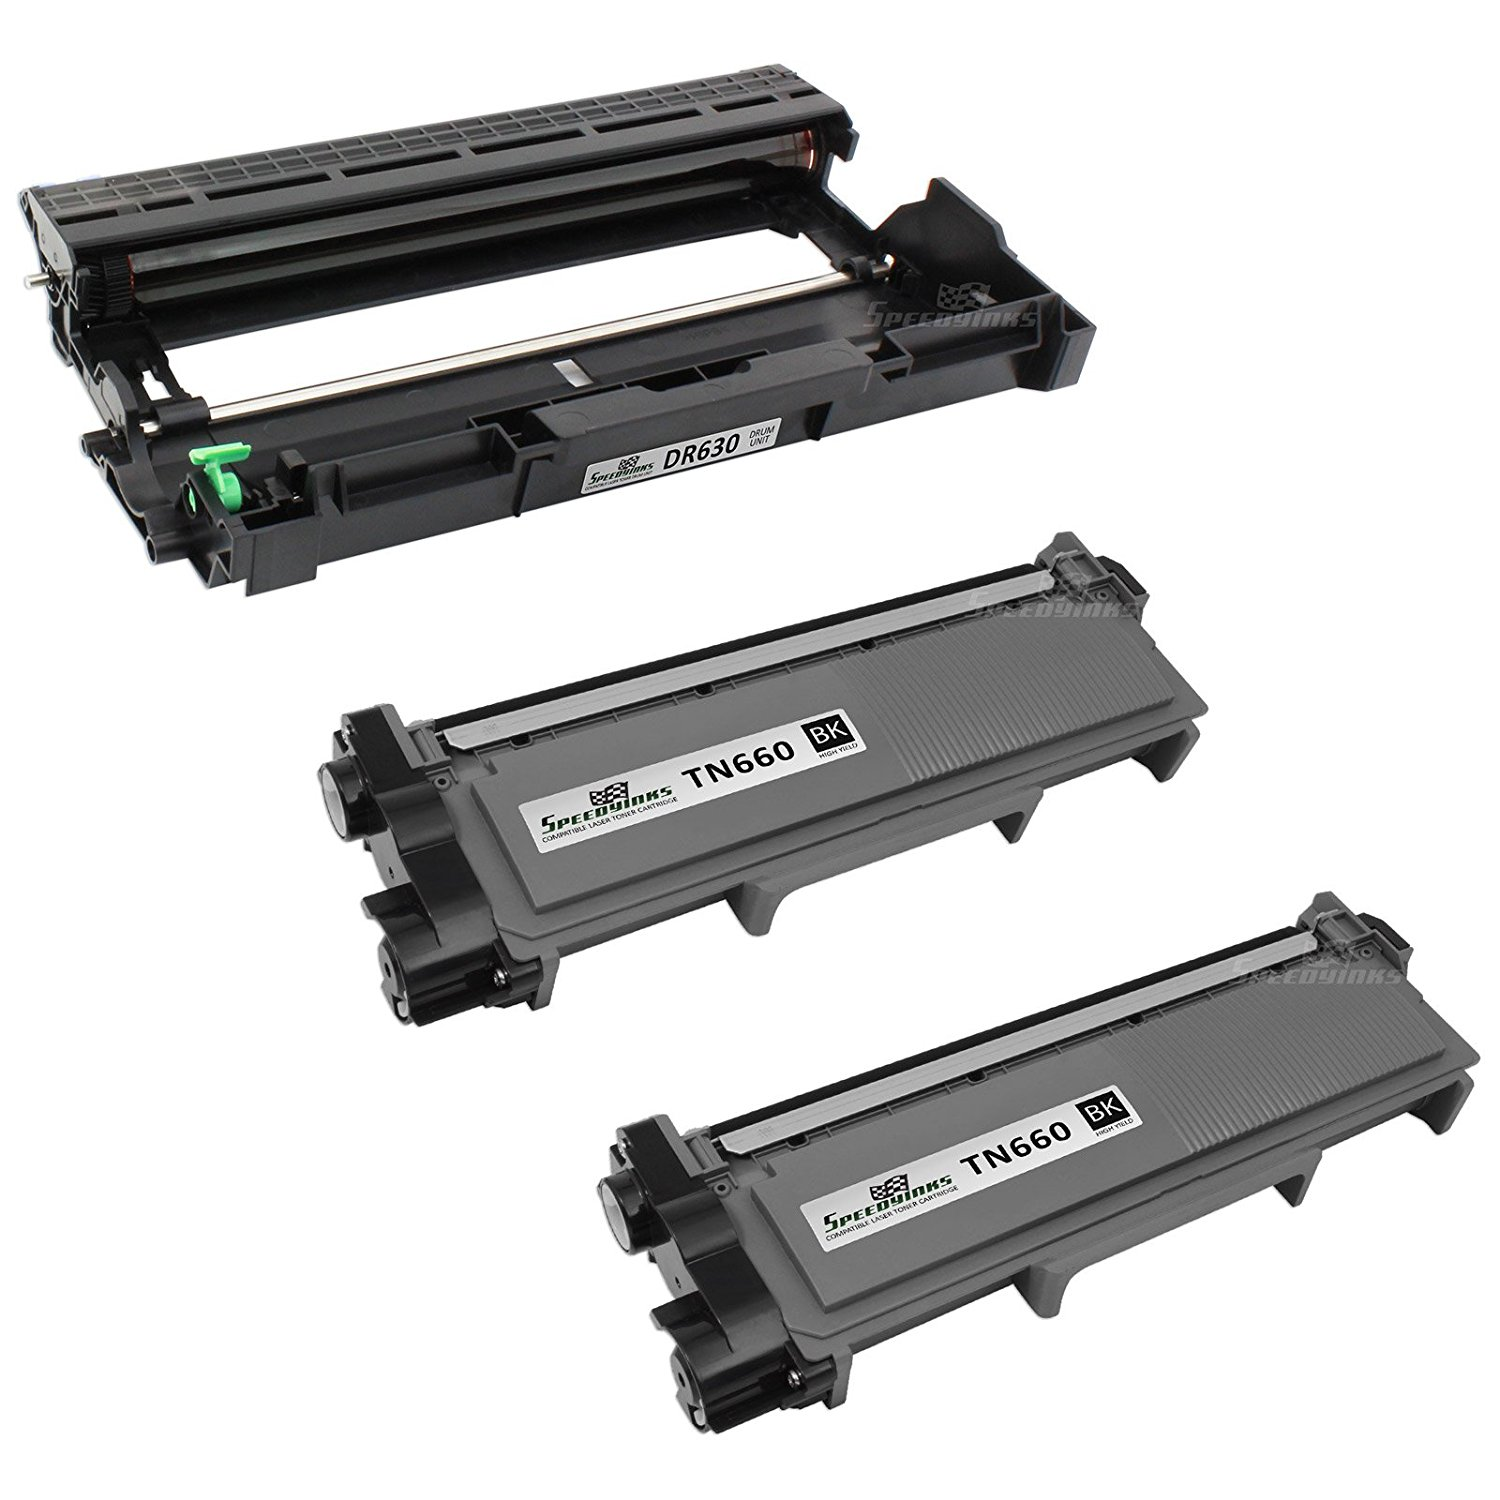 SpeedyInks Compatible Toner and Drum Replacement for Brother TN660 & DR630 (2 Toner, 1 Drum, 3-Pack)